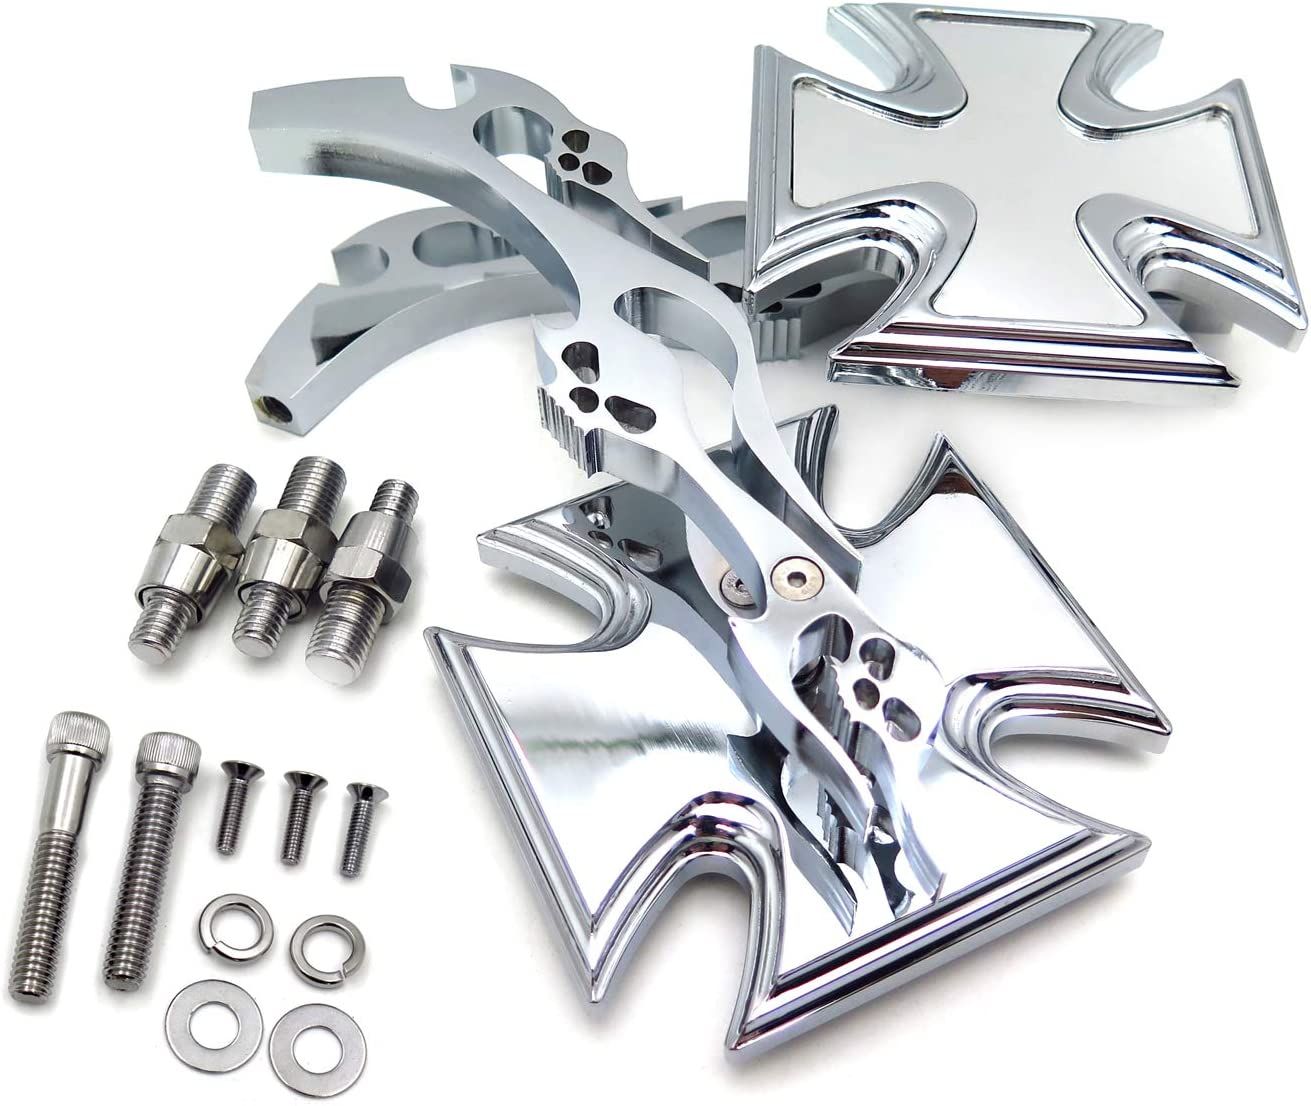 Chrome New Billet Custom Running Mirrors fit Harley Dyna Wide Glide Flame Style